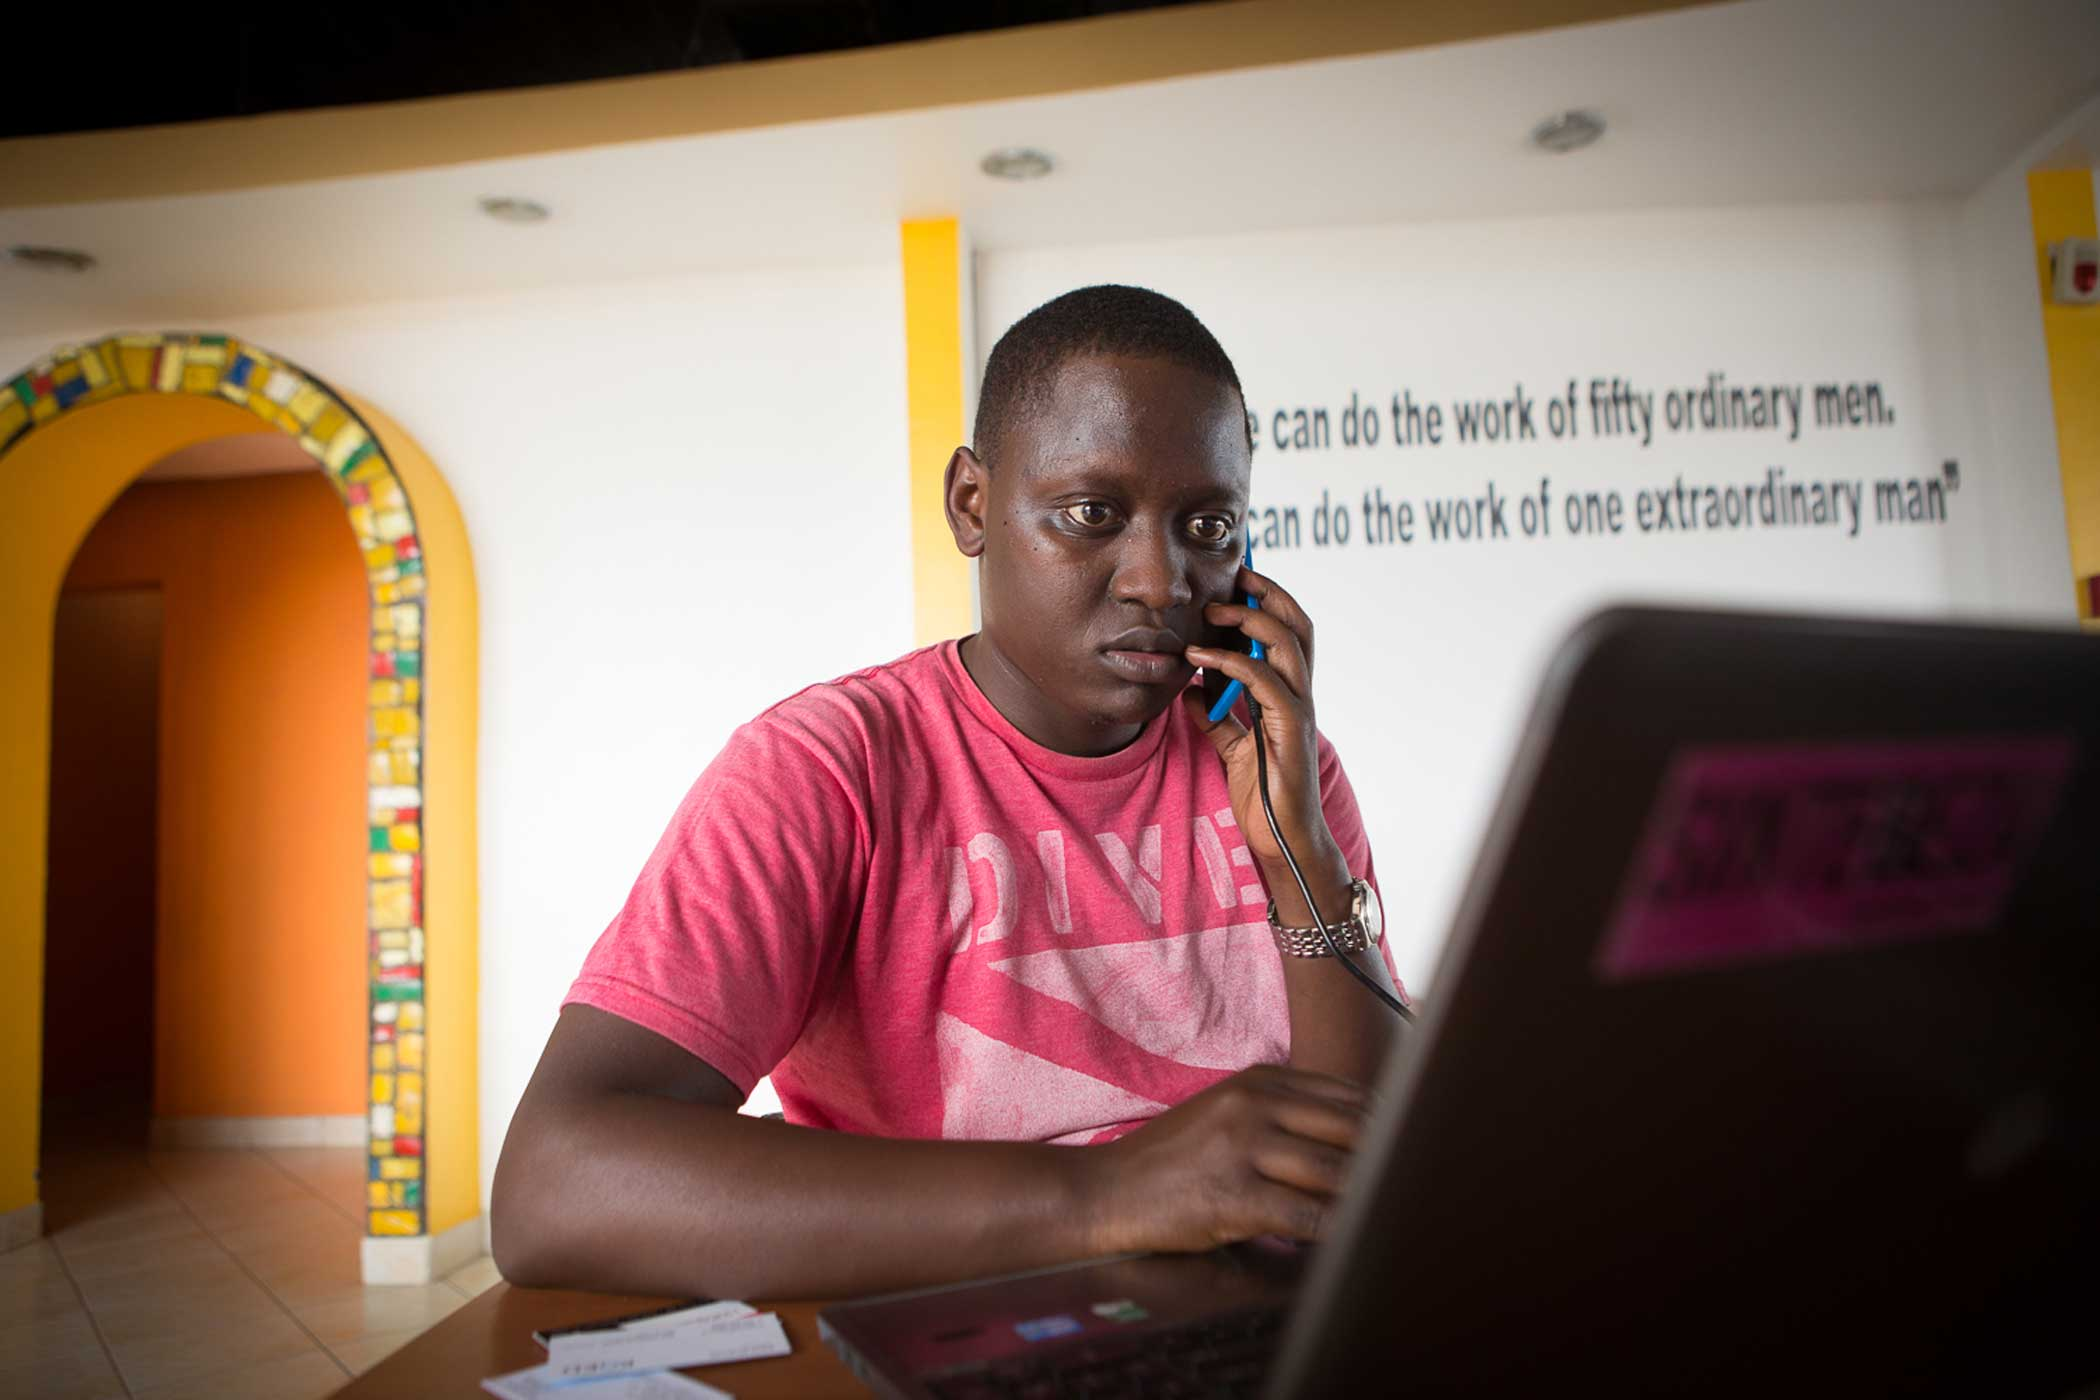 Aphrodice Mutangana, 30, working at the kLab co-working space in Kigali.